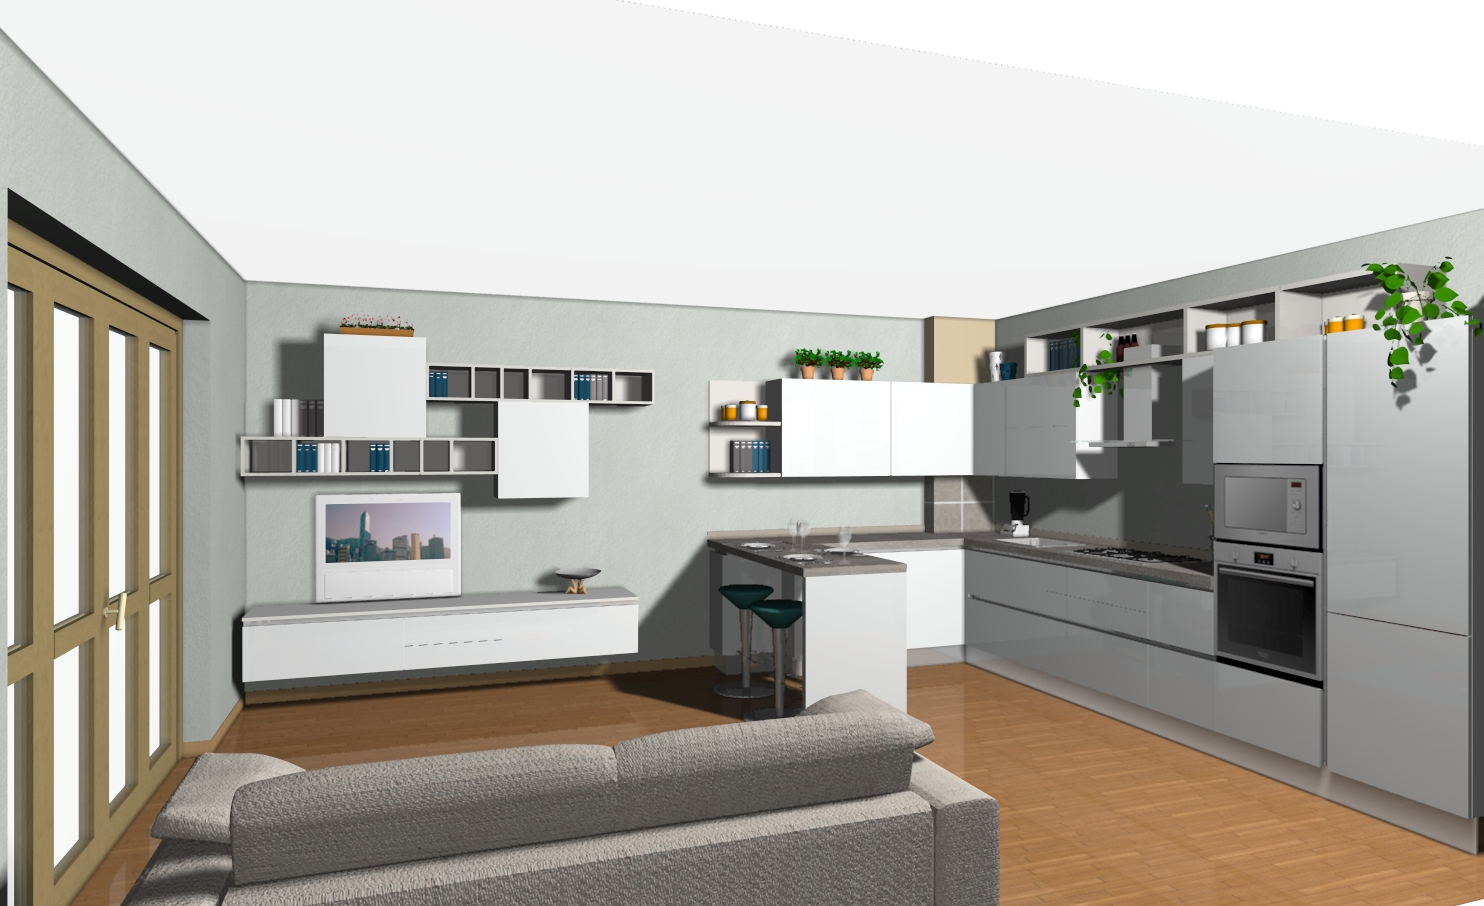 Cucine e living with cucine e living with cucine e - Cucine e living ...